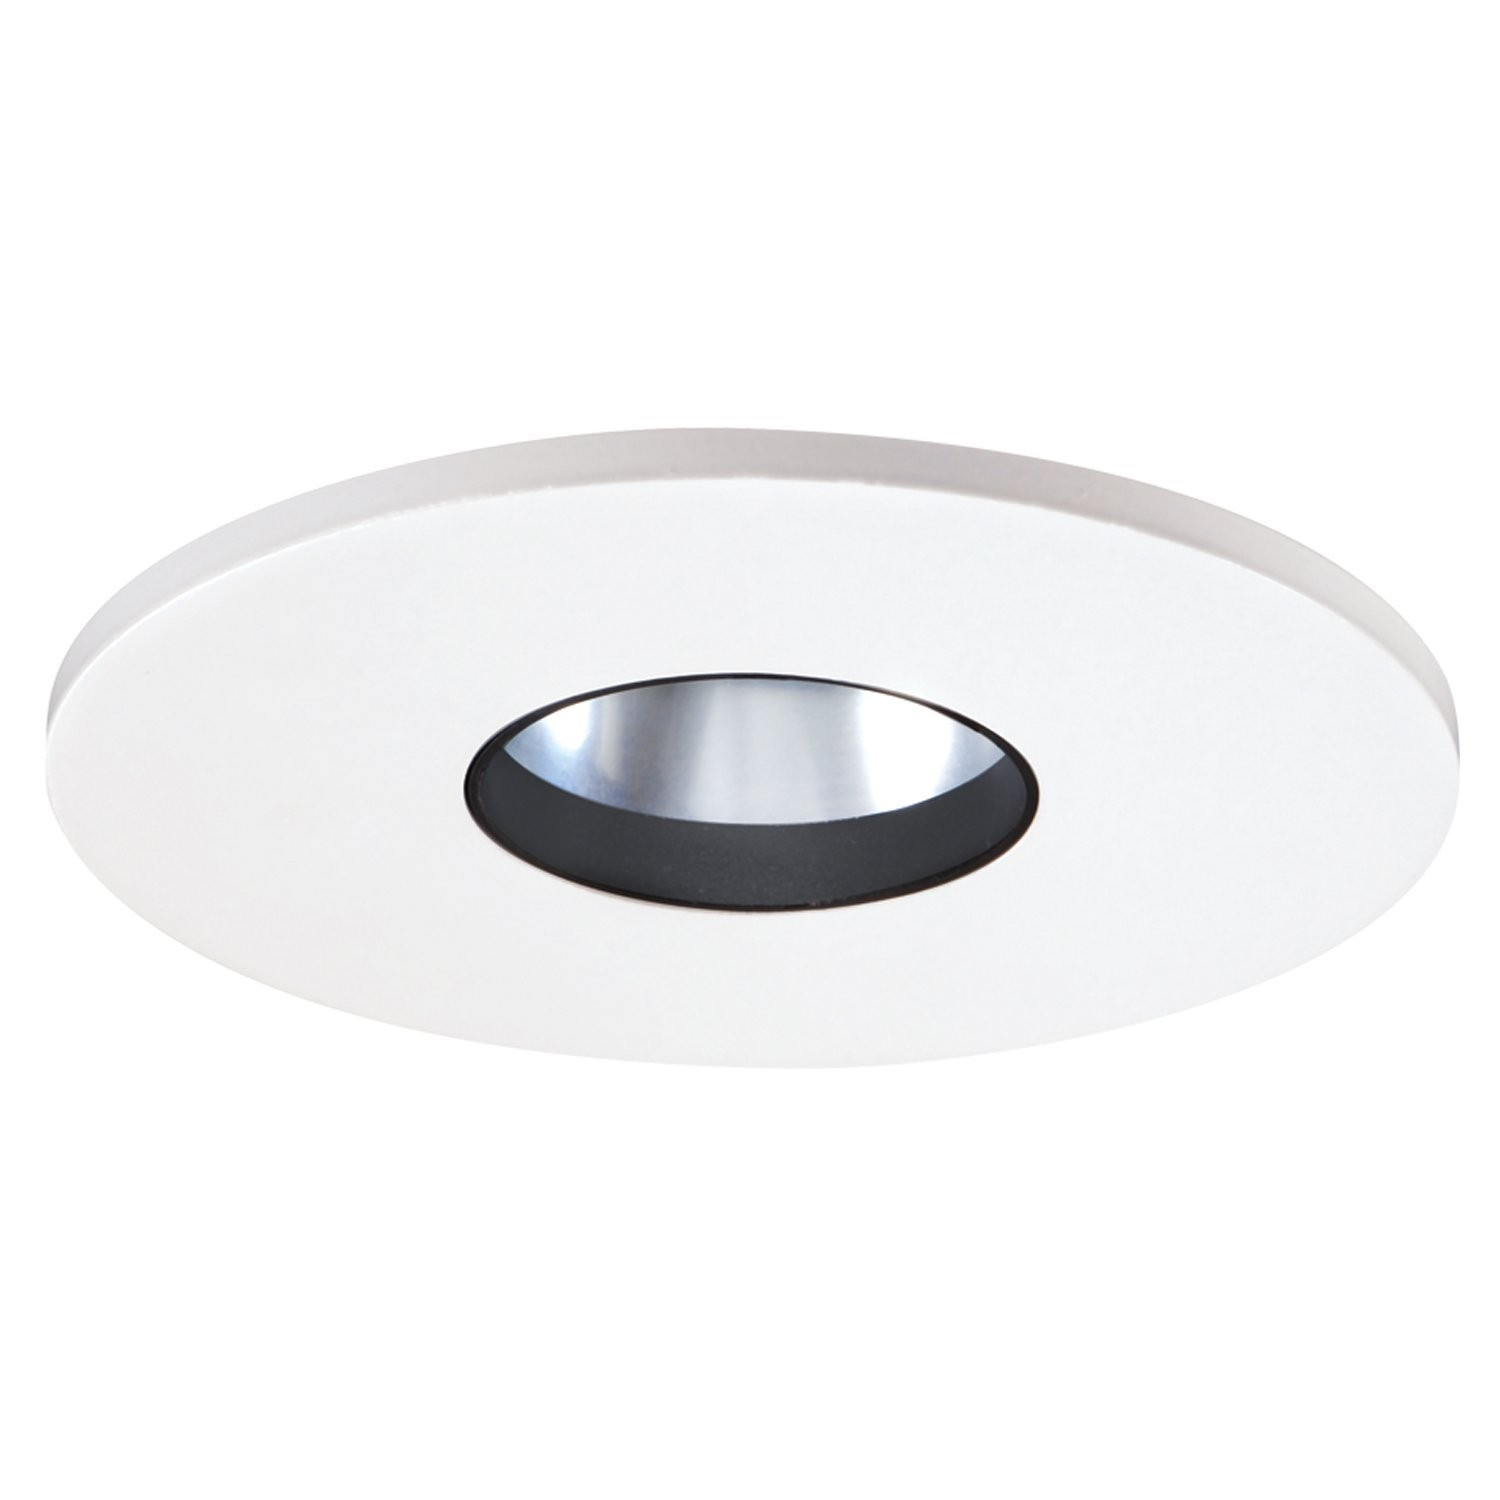 Halo 3002whc recessed lighting trim 3 low voltage adjustable halo 3002whc recessed lighting trim 3 low voltage adjustable baffle pinhole reflector trim white with clear reflector arubaitofo Image collections